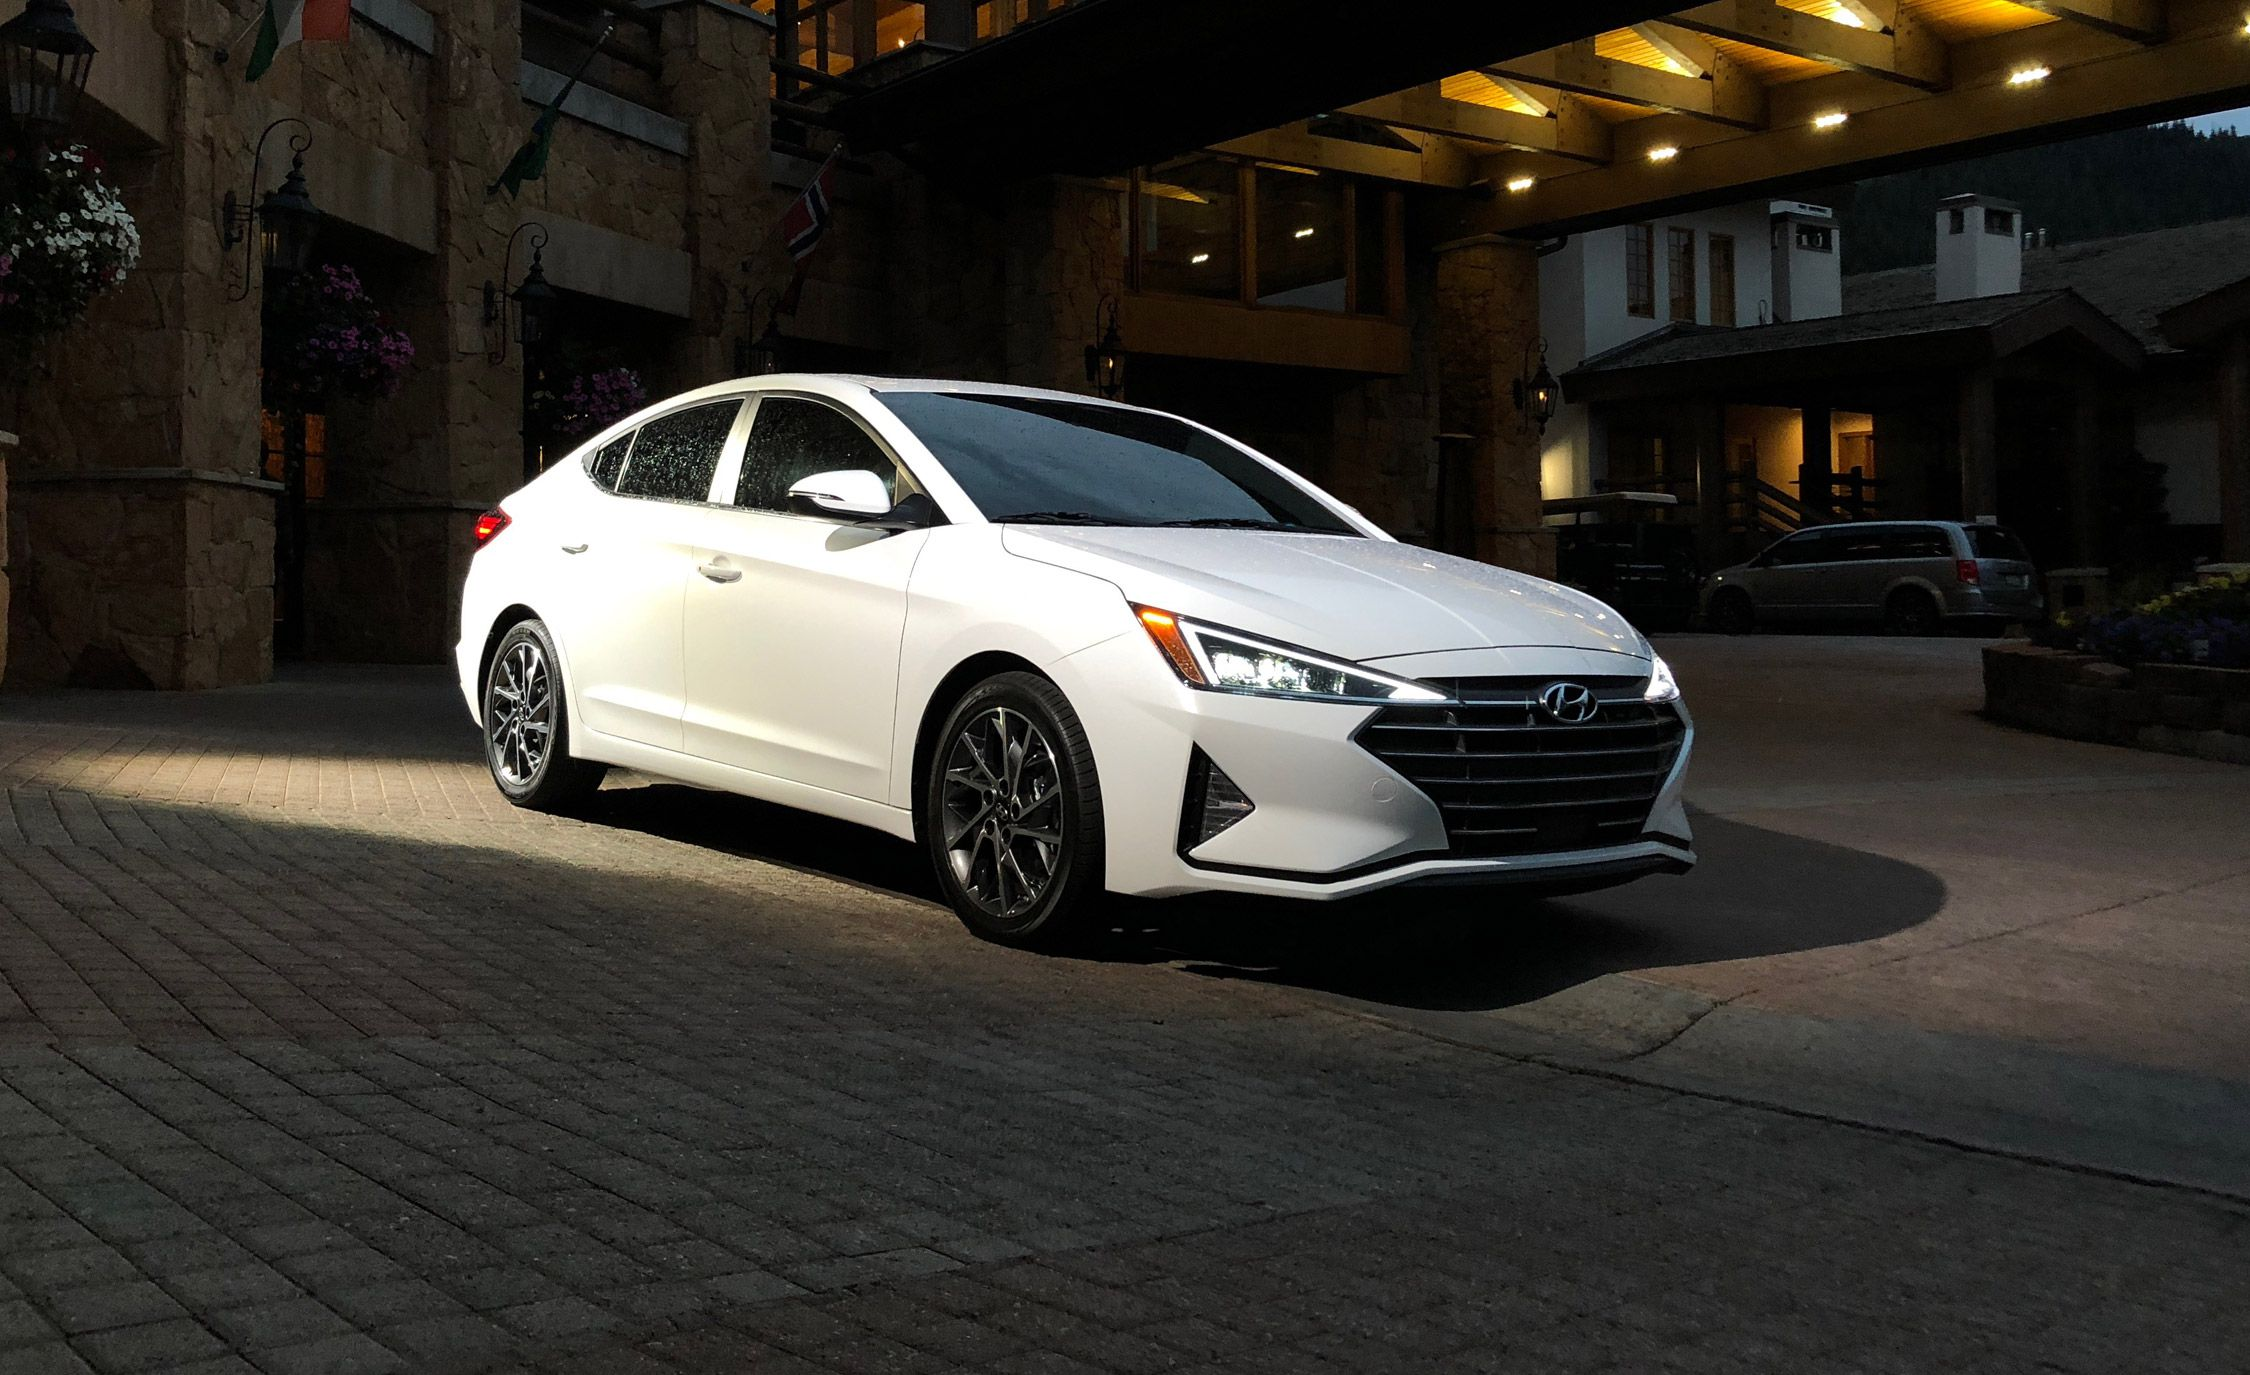 2019-hyundai-elantra-sedan-placement-1534950133.jpg